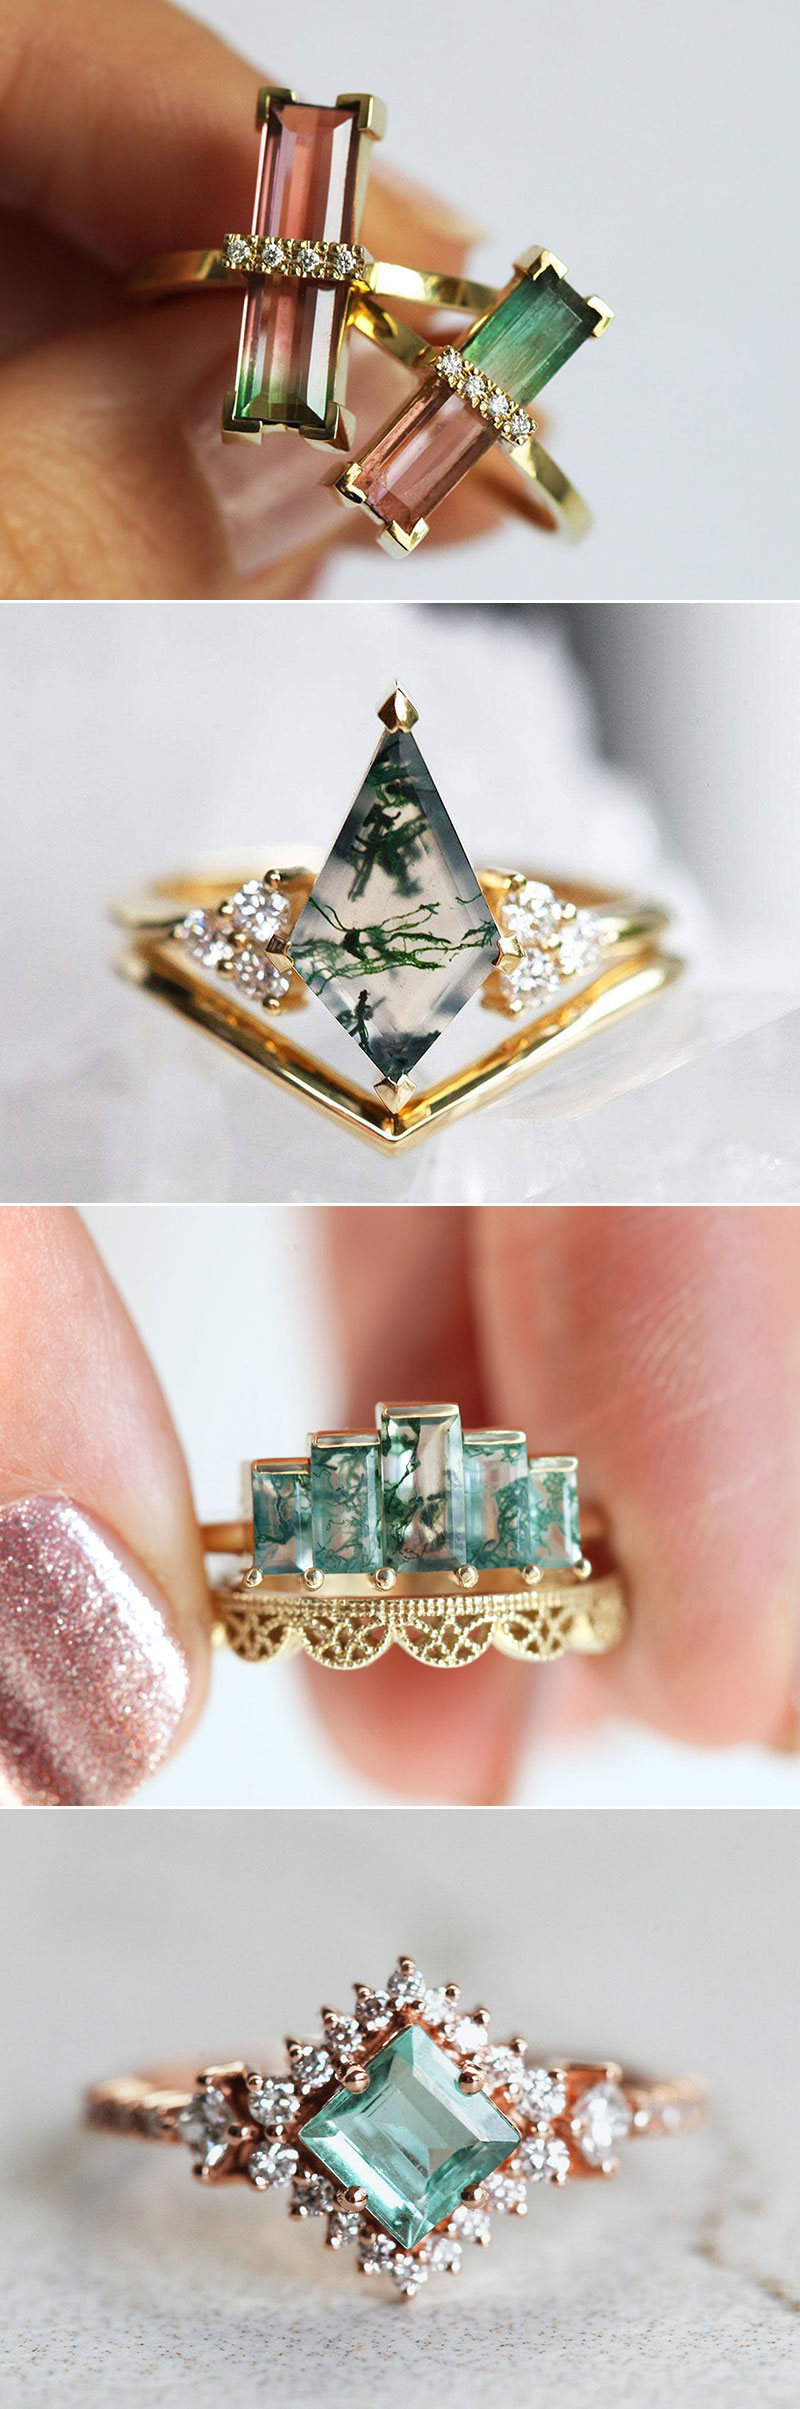 Nature-Inspired Green Stones